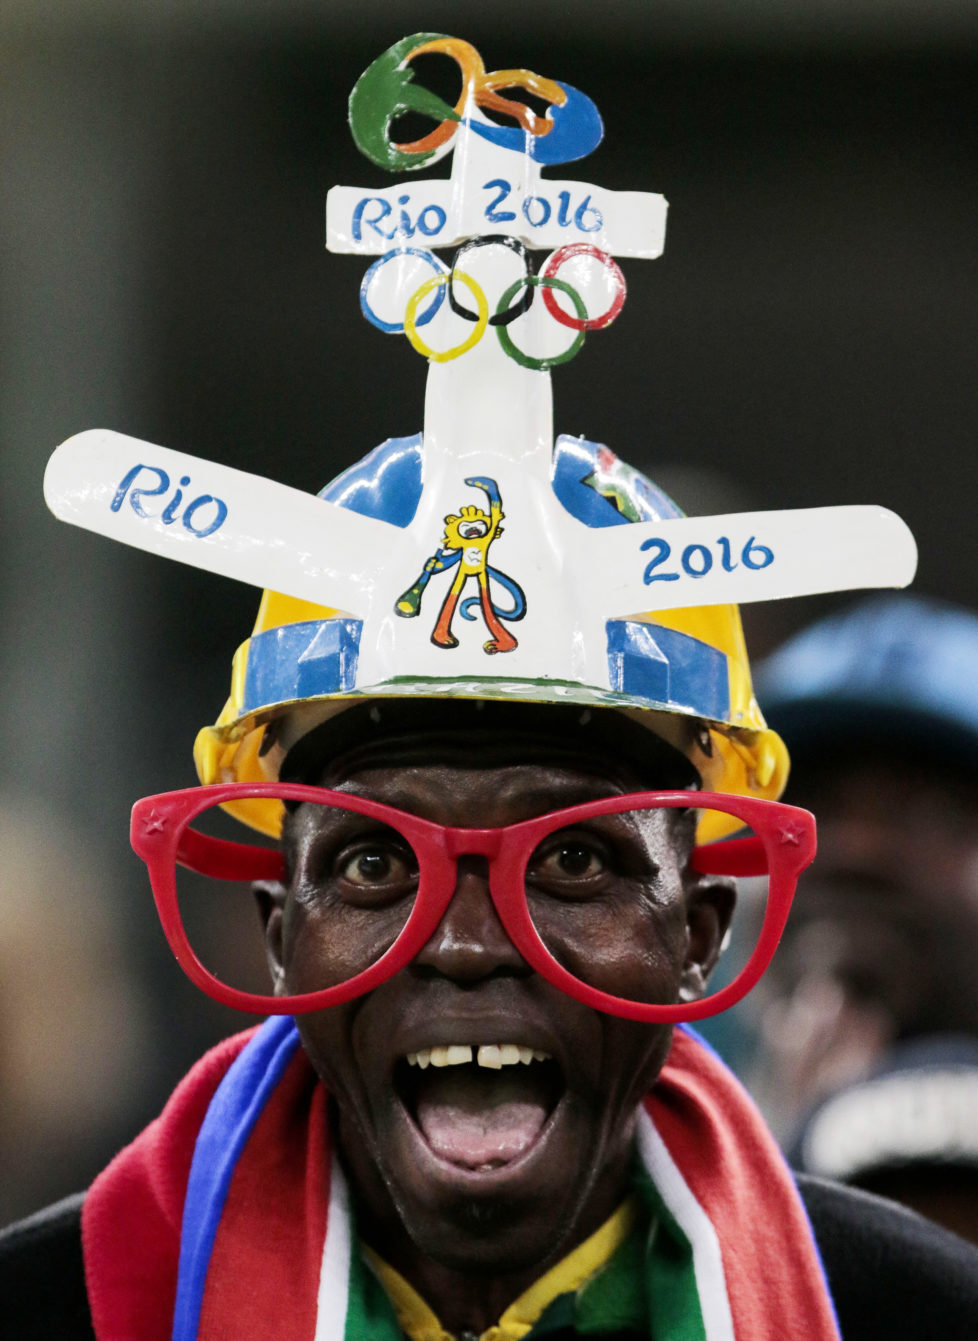 Fans of South Africa cheer their team during their Rio 2016 Olympic Games First Round Group A men's football match South Africa vs Iraq at the Corinthians Arena, in Sao Paulo, Brazil, on August 10, 2016. / AFP PHOTO / Miguel SCHINCARIOL